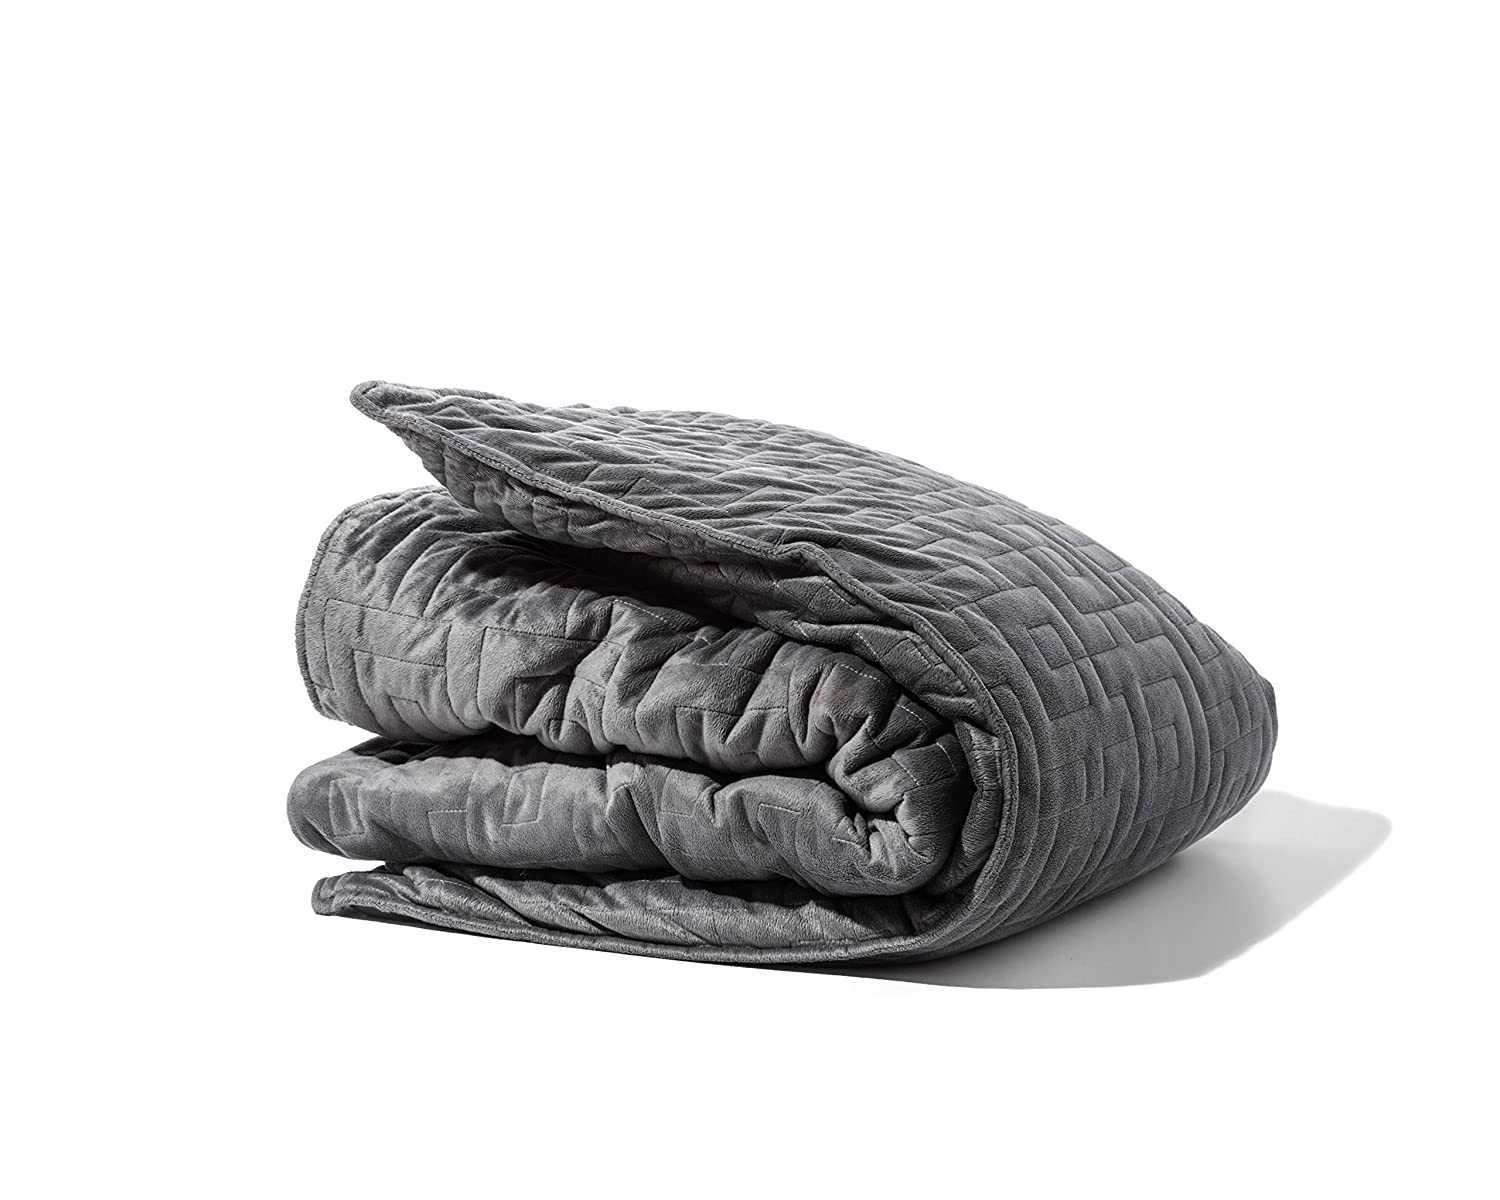 """Gravity Blanket: The Weighted Blanket For Sleep, Stress and Anxiety, Space Grey 48"""" x 72"""" Size, 25-Pound sleep blankets Sleep blankets review – benefits of sleeping with weighted blankets 81e3ztxG5 L"""